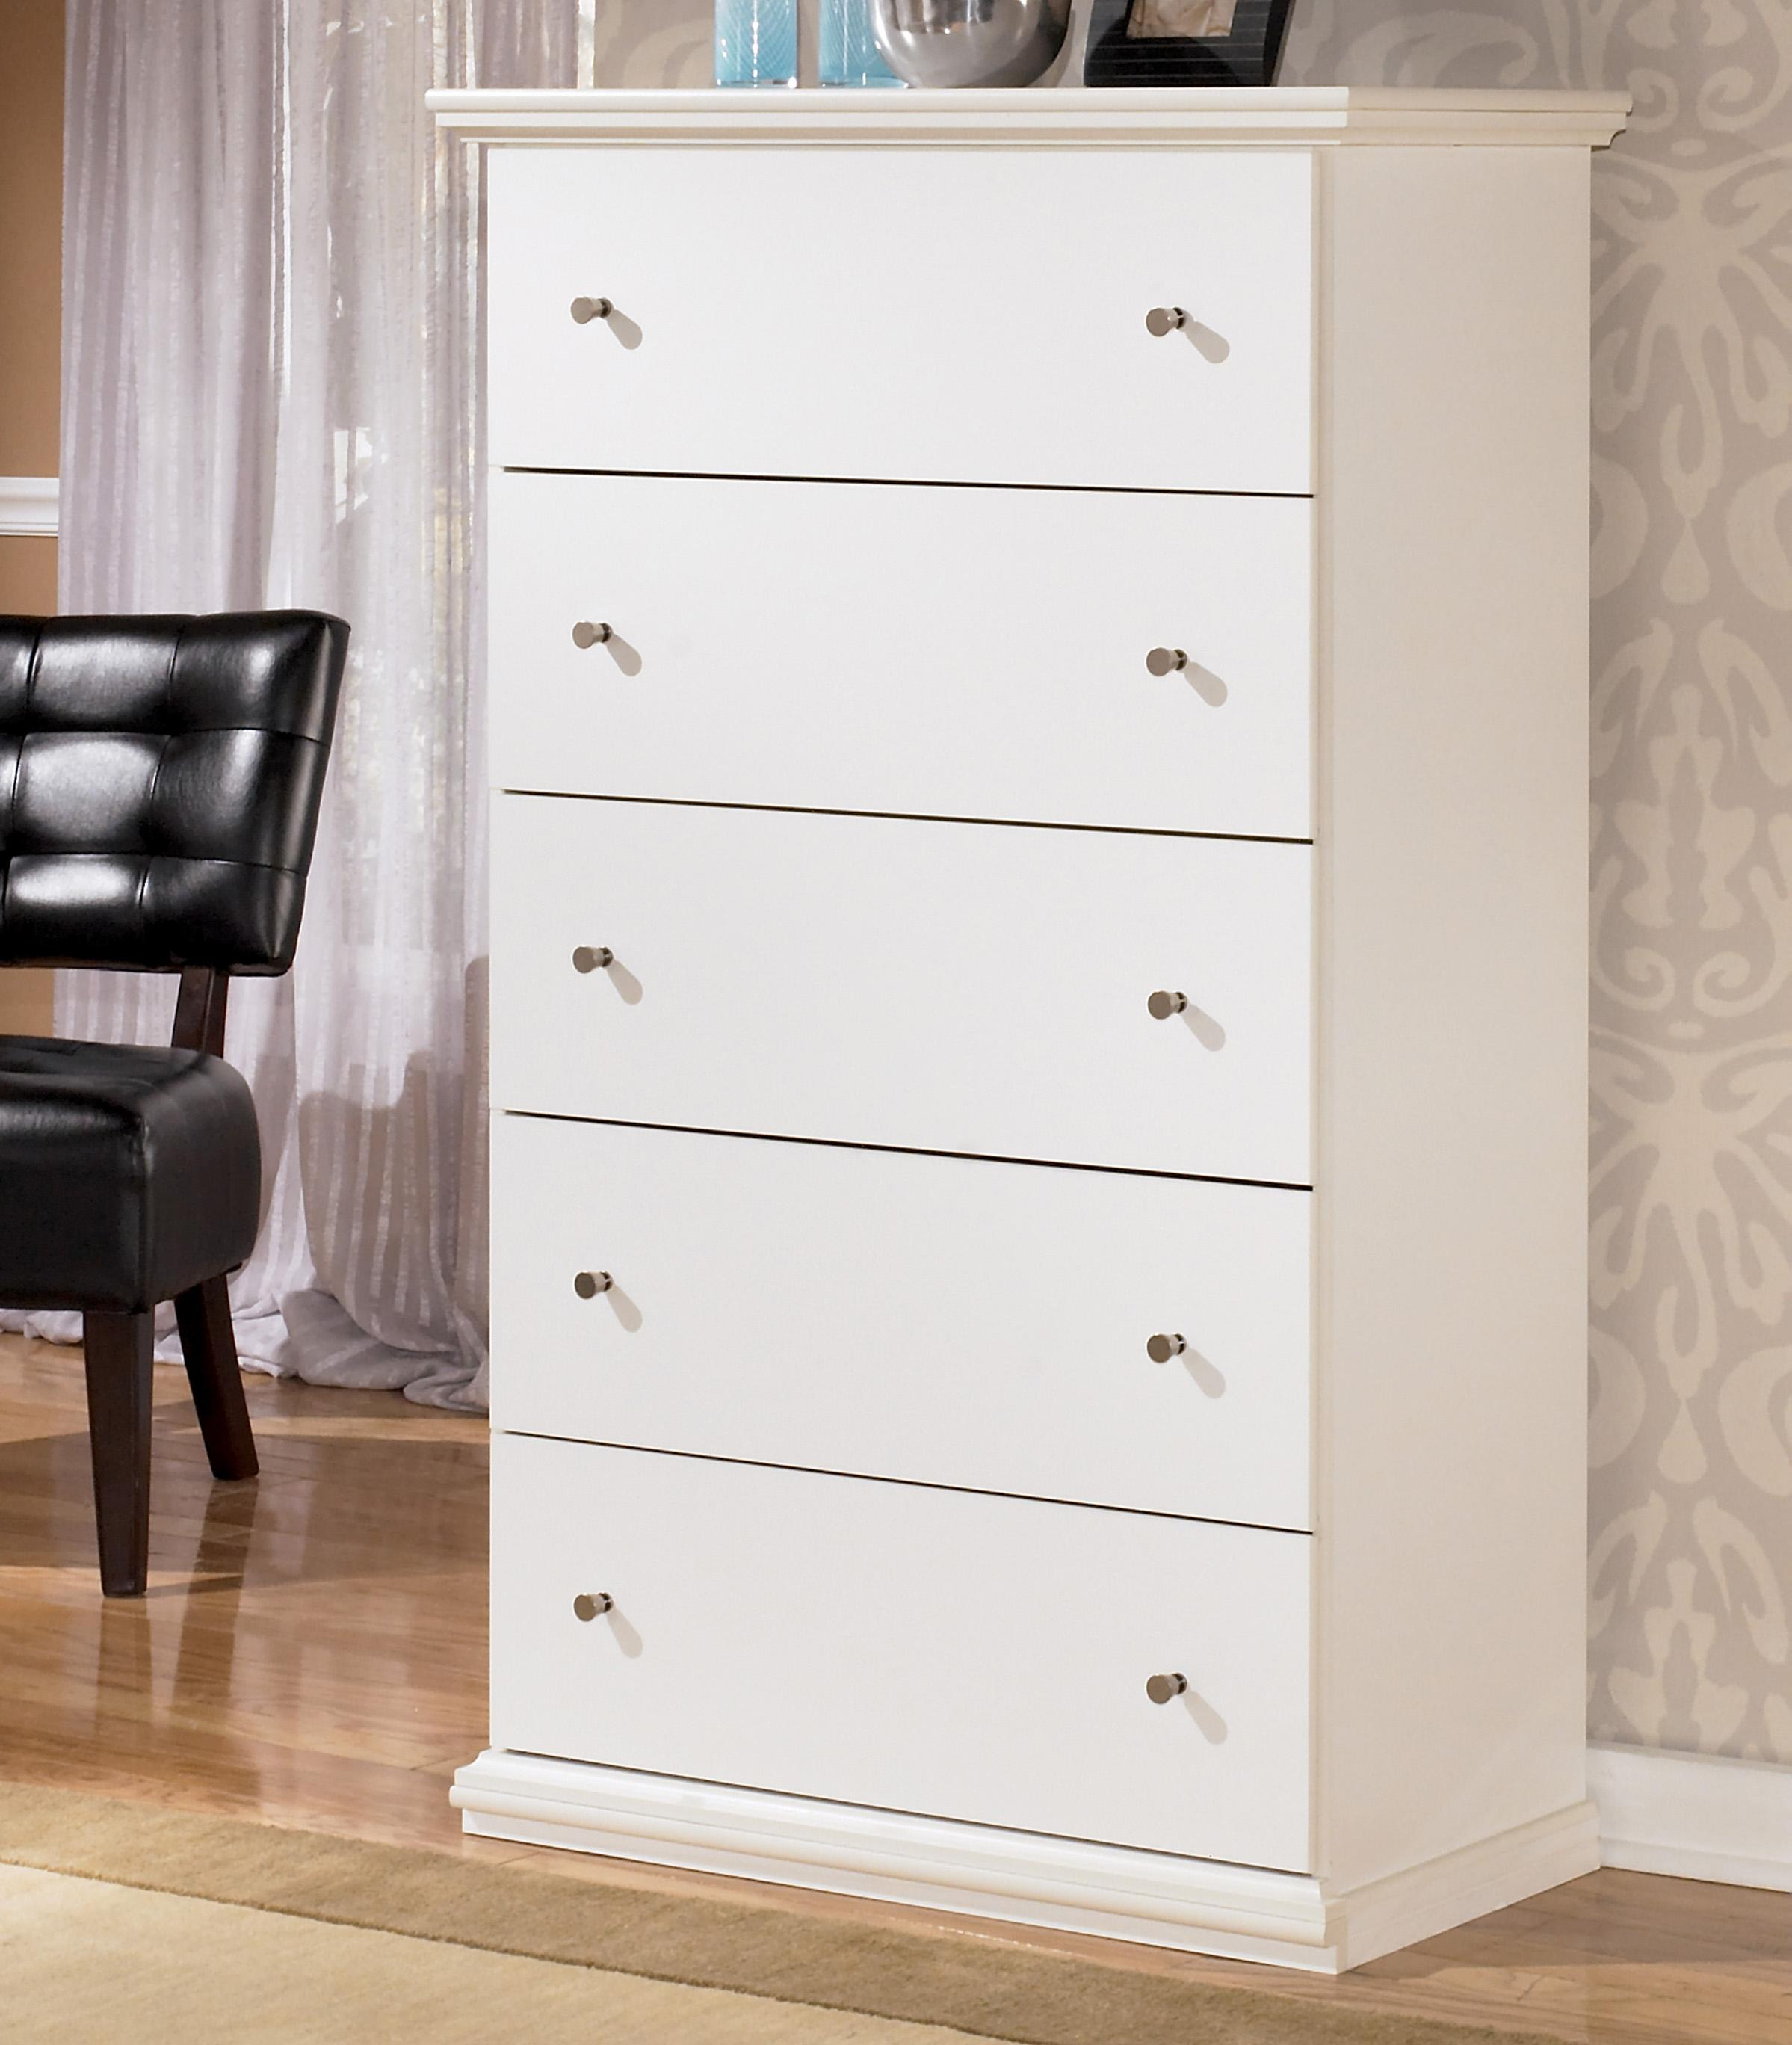 Bostwick Shoals Chest by Signature Design by Ashley at Zak's Warehouse Clearance Center